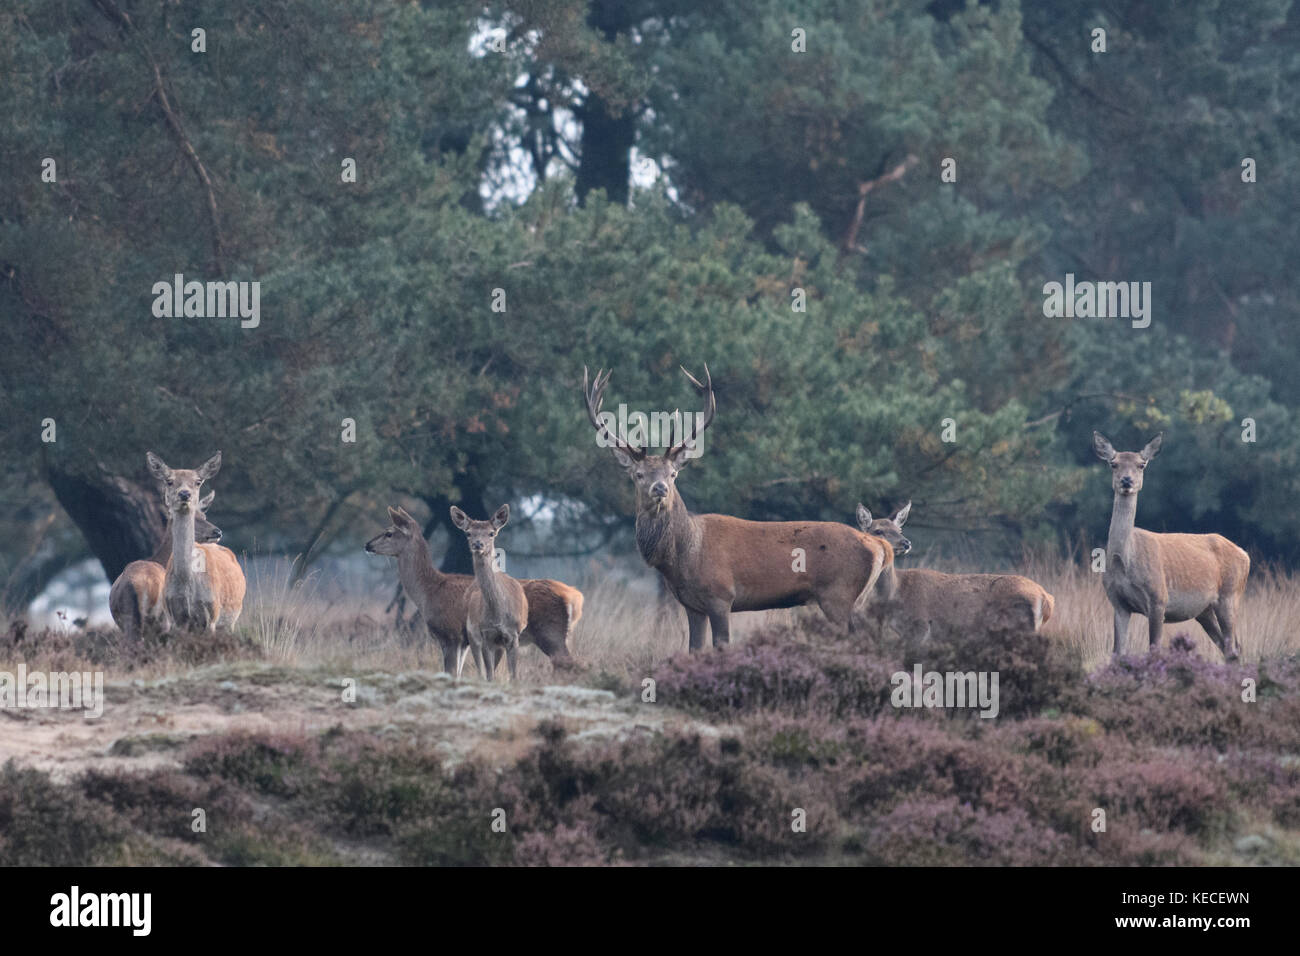 Group of red deer during rutting season in Pine forest with heather, Veluwe, Netherlands, October 9 2017 - Stock Image